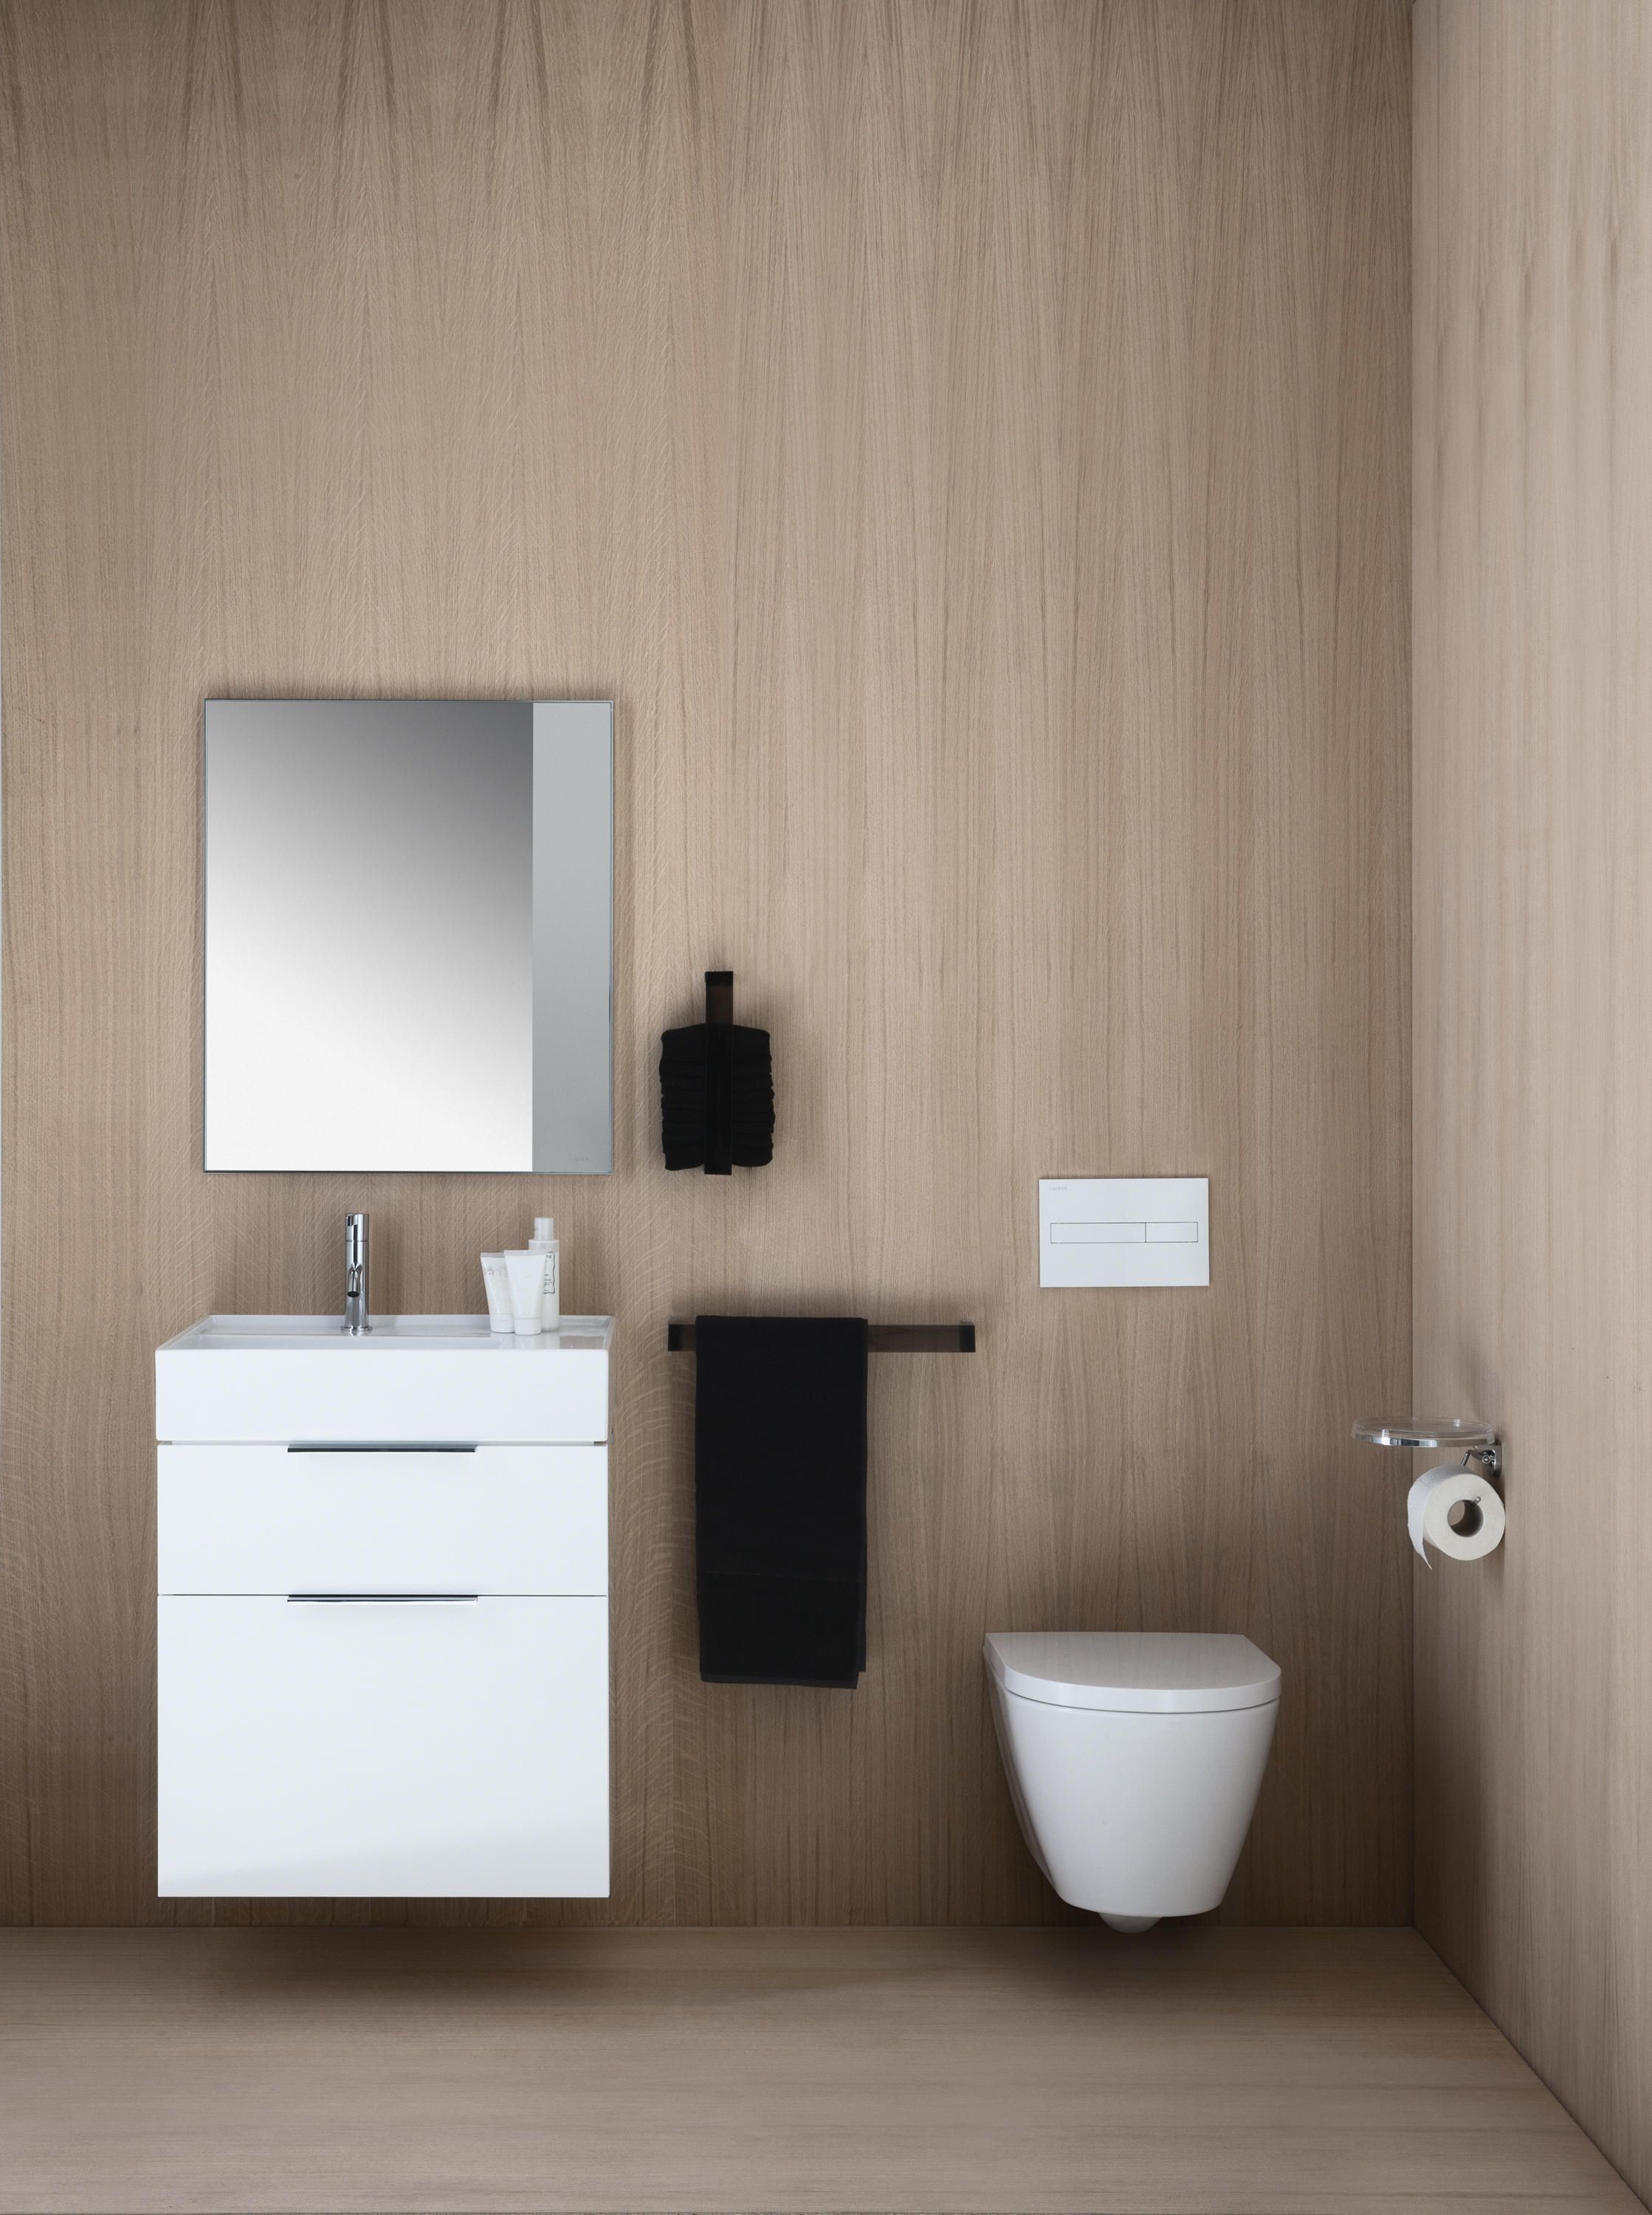 Kartell By Laufen Floorstanding Wc Designer Toilets From All Information High Resolution Images Cads Catalogues Contact